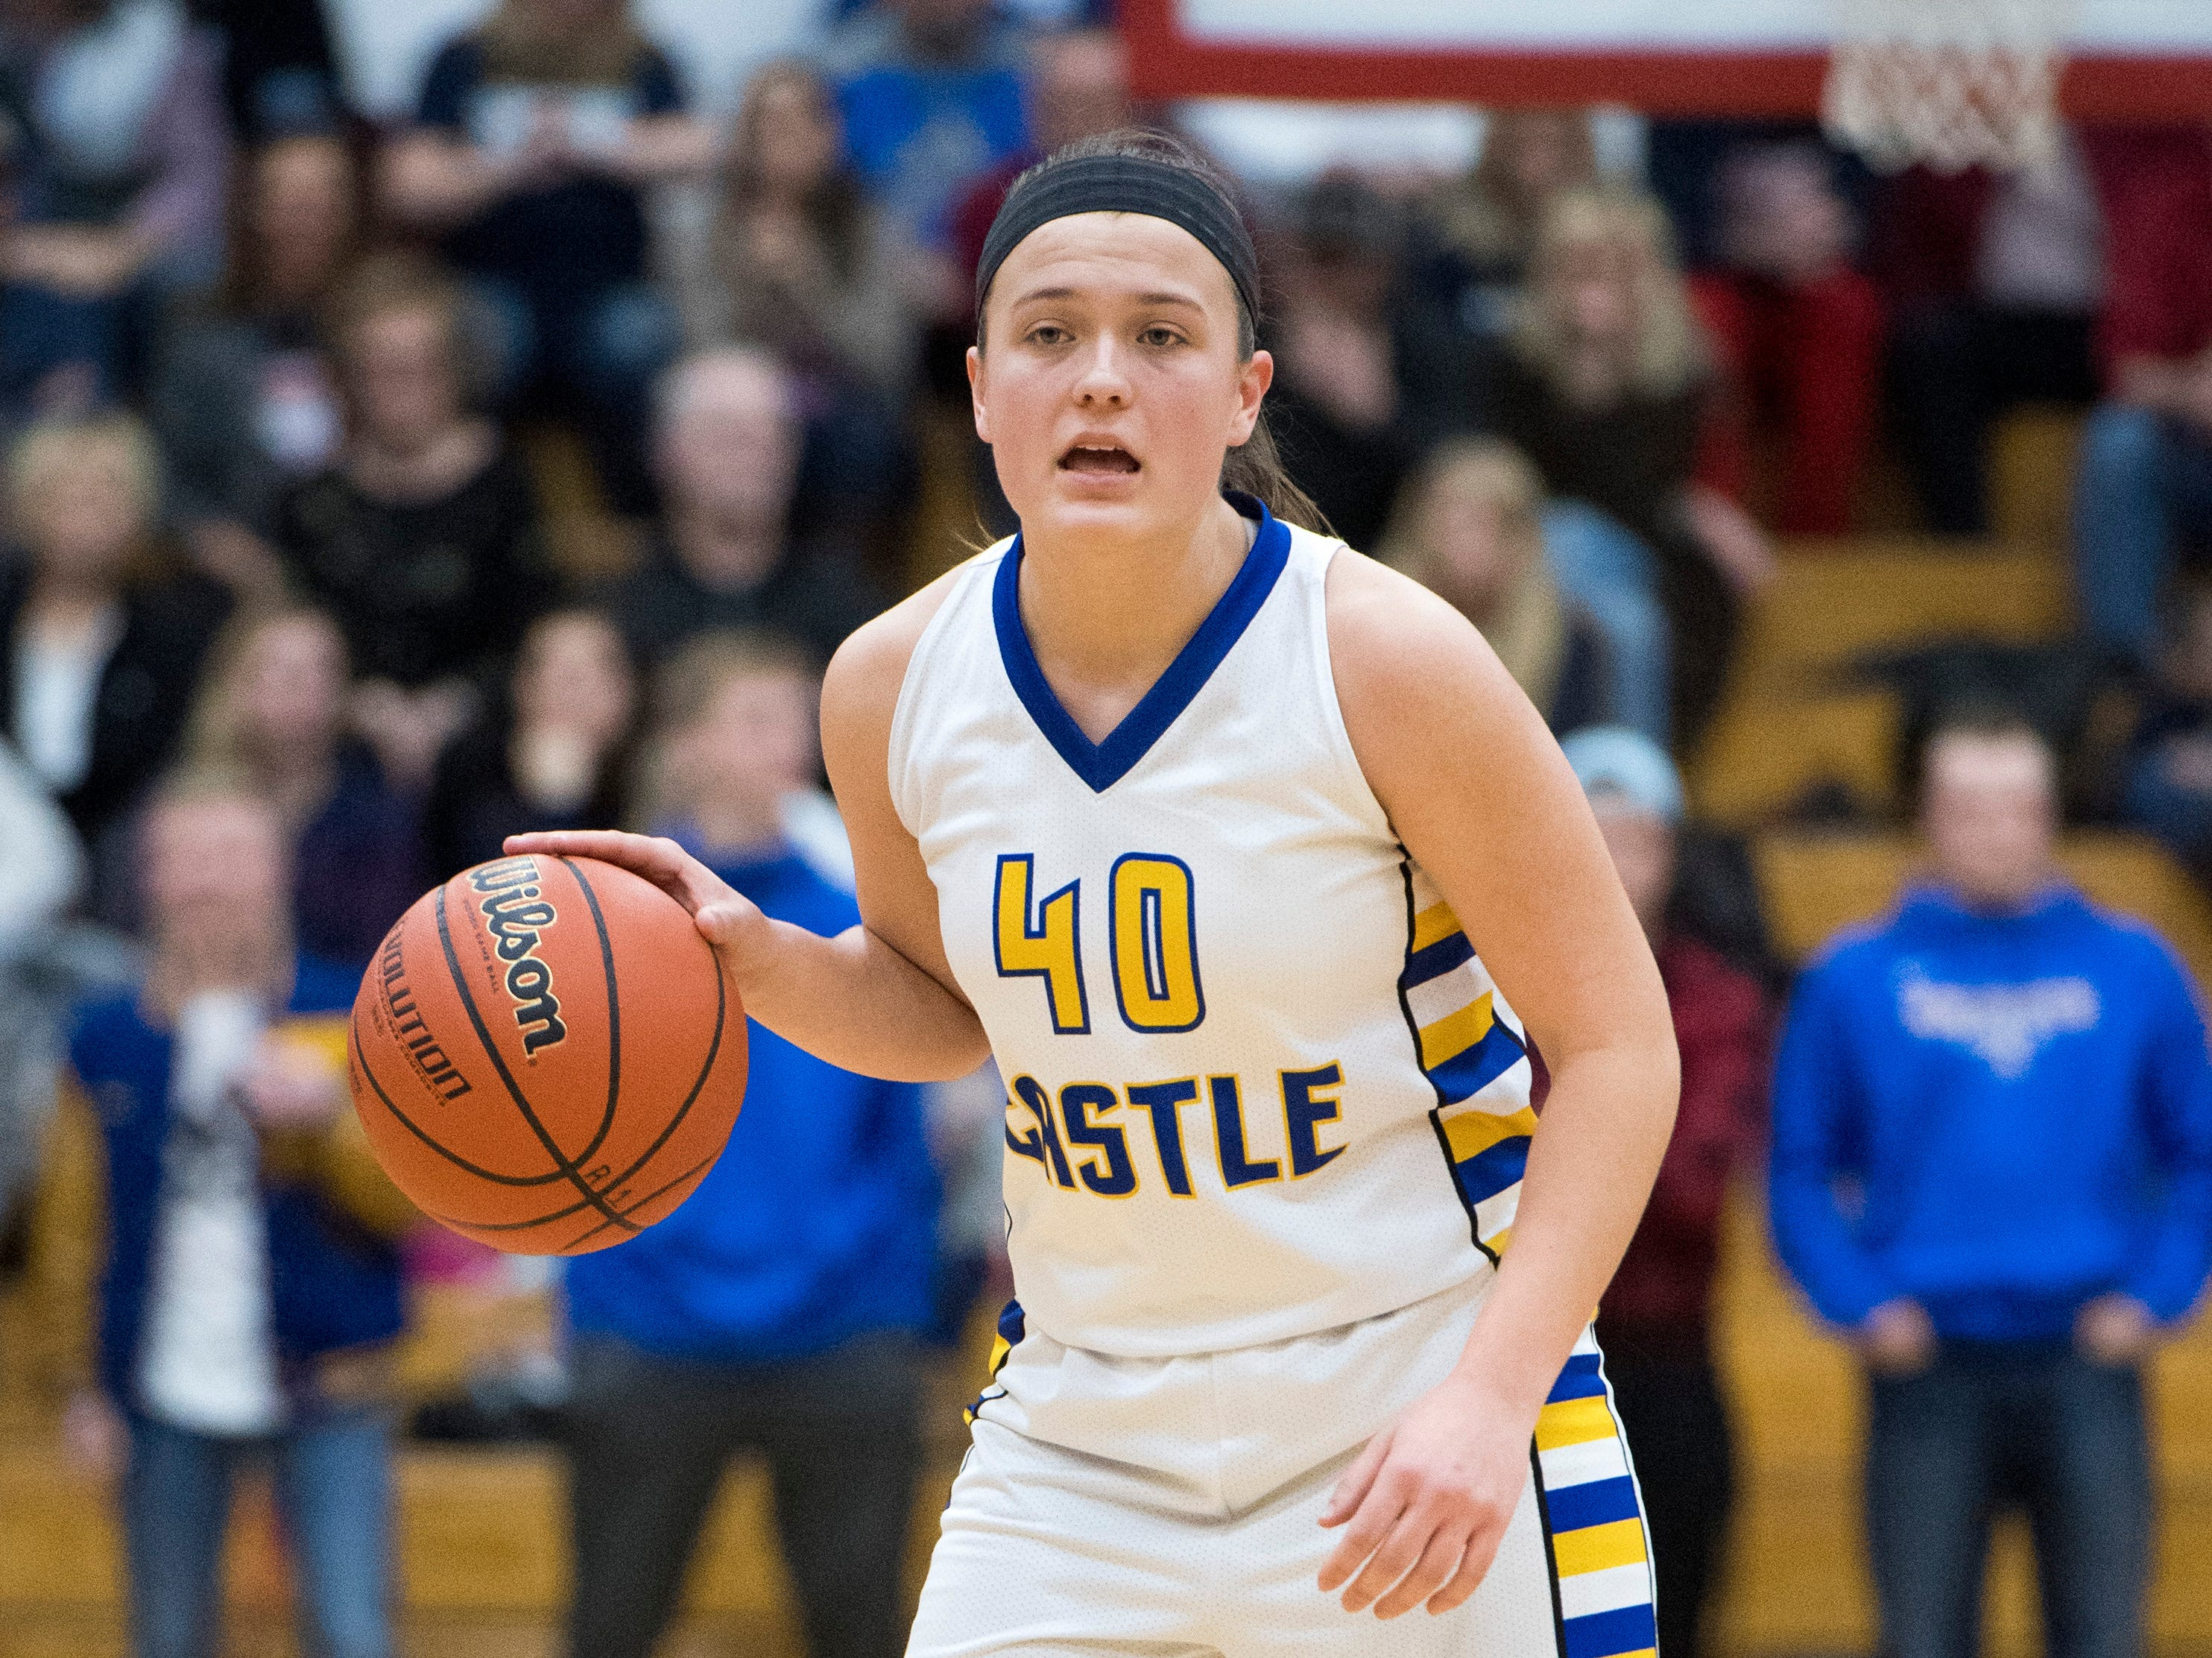 Castle's Mckenna Tutt (40) calls a play during the  IHSAA Girls Basketball Class 4A Regional Championship game against the Bedford North Lawrence Lady Stars at the Stars Field House in Bedford, Ind. Saturday, Feb. 9, 2019.